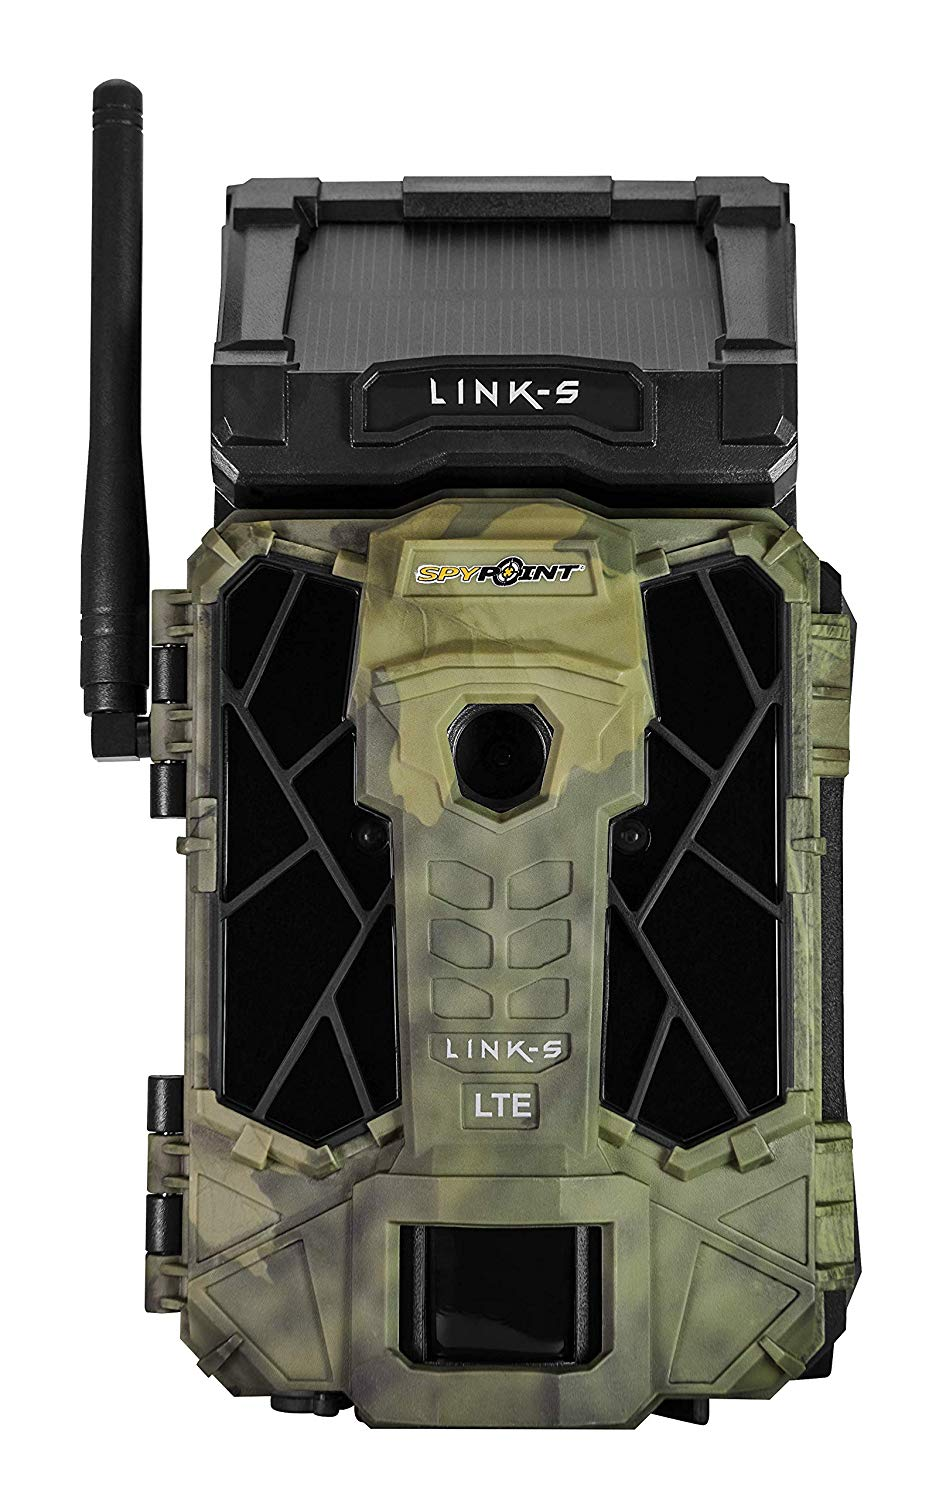 Spypoint Trail Camera Reviews in 2019